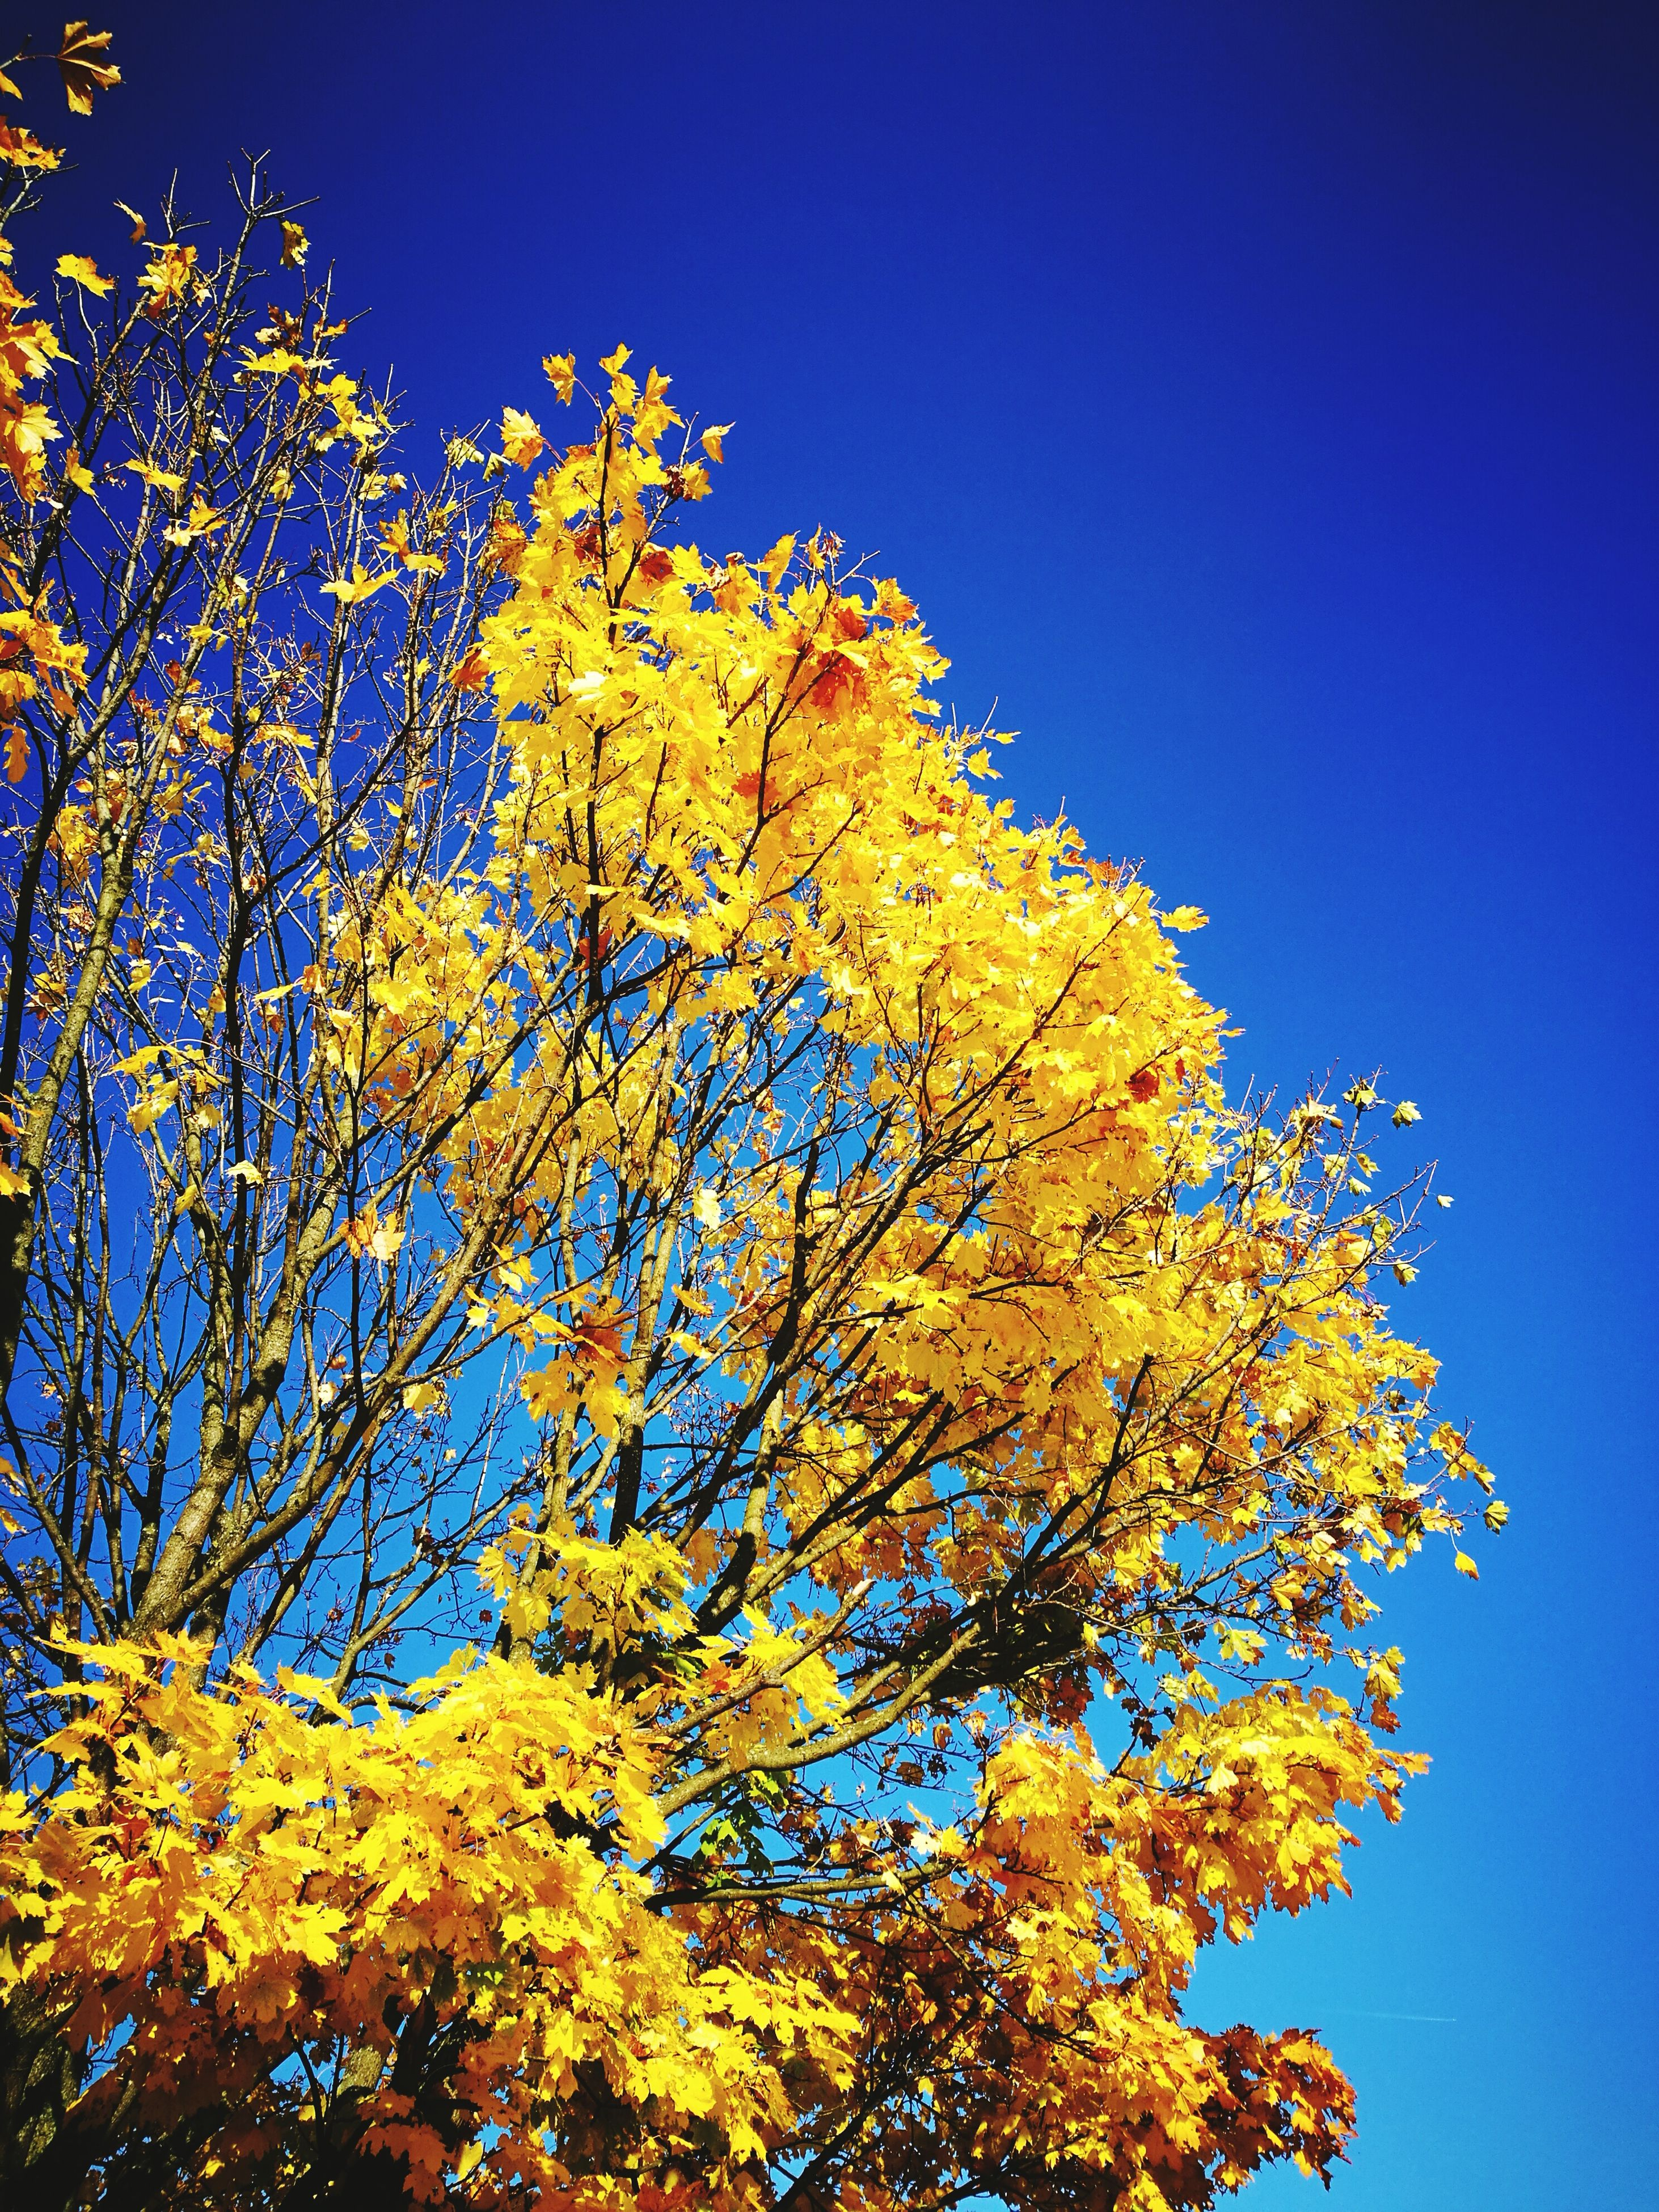 low angle view, blue, clear sky, no people, sky, gold colored, outdoors, sunlight, yellow, tree, day, close-up, nature, beauty in nature